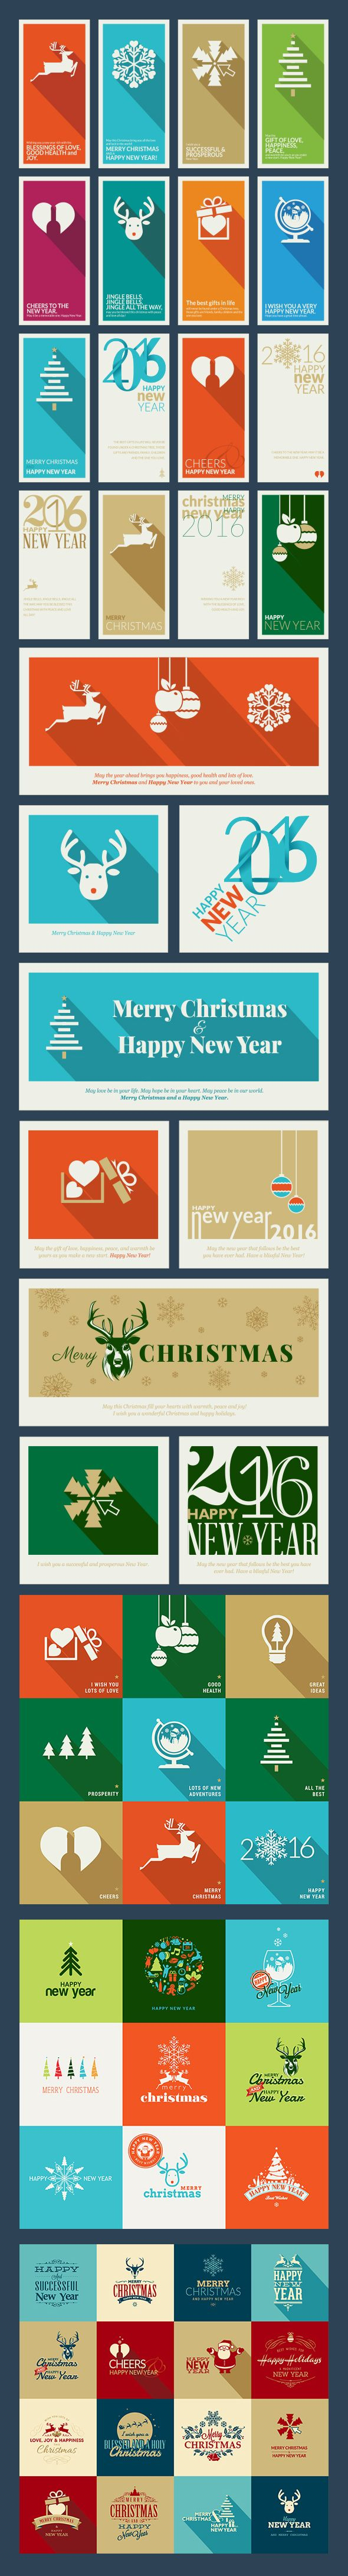 Flat Design Christmas Cards by PureSolution on Creative Market